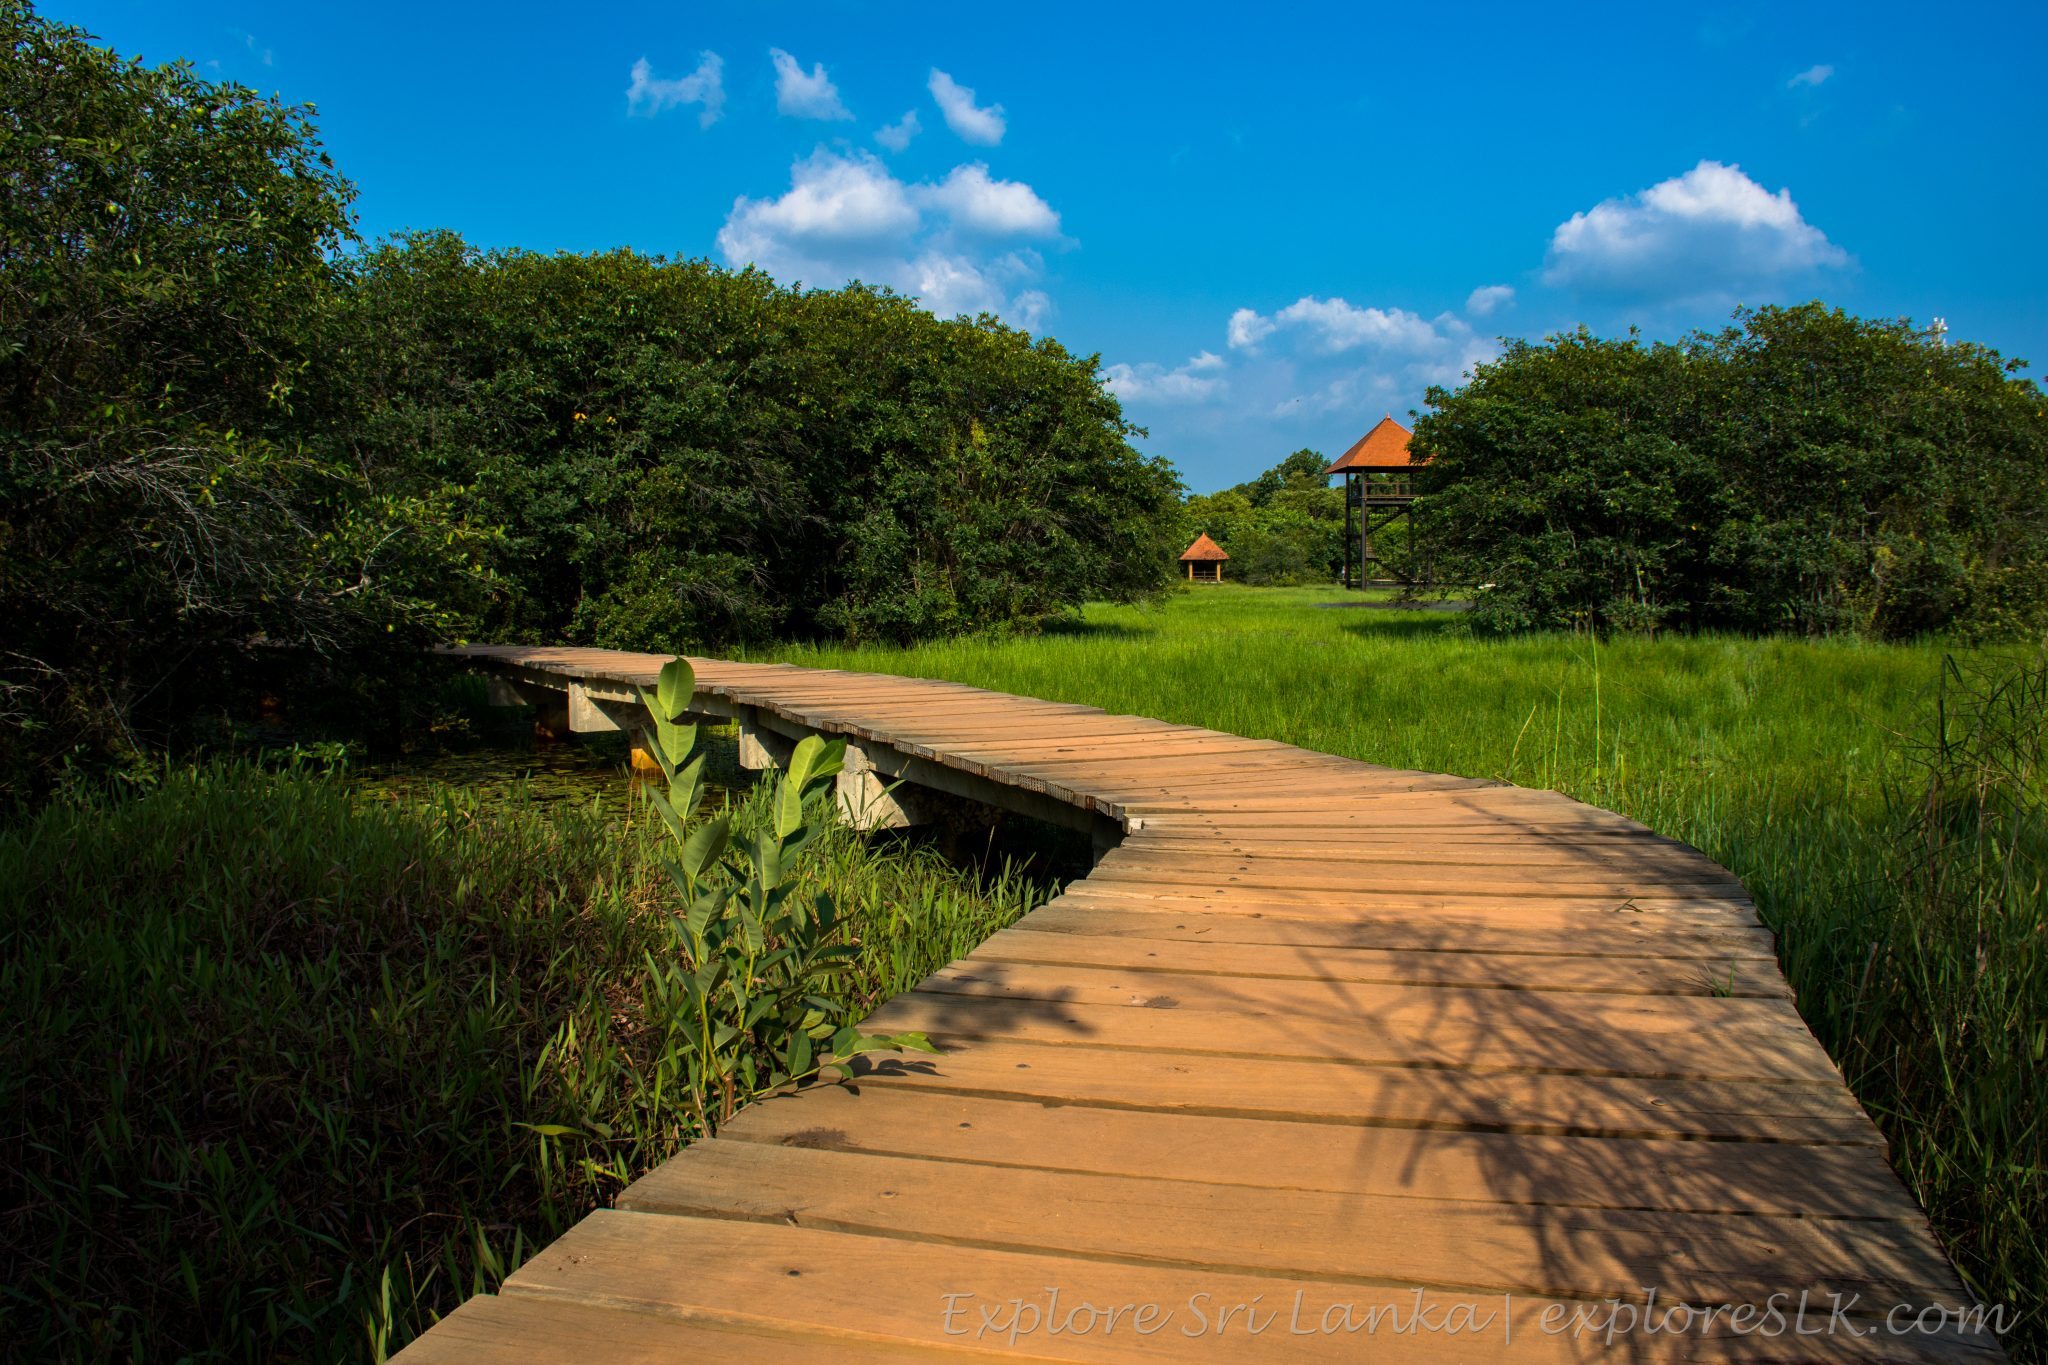 Footpaths in Beddagana Wetland Park